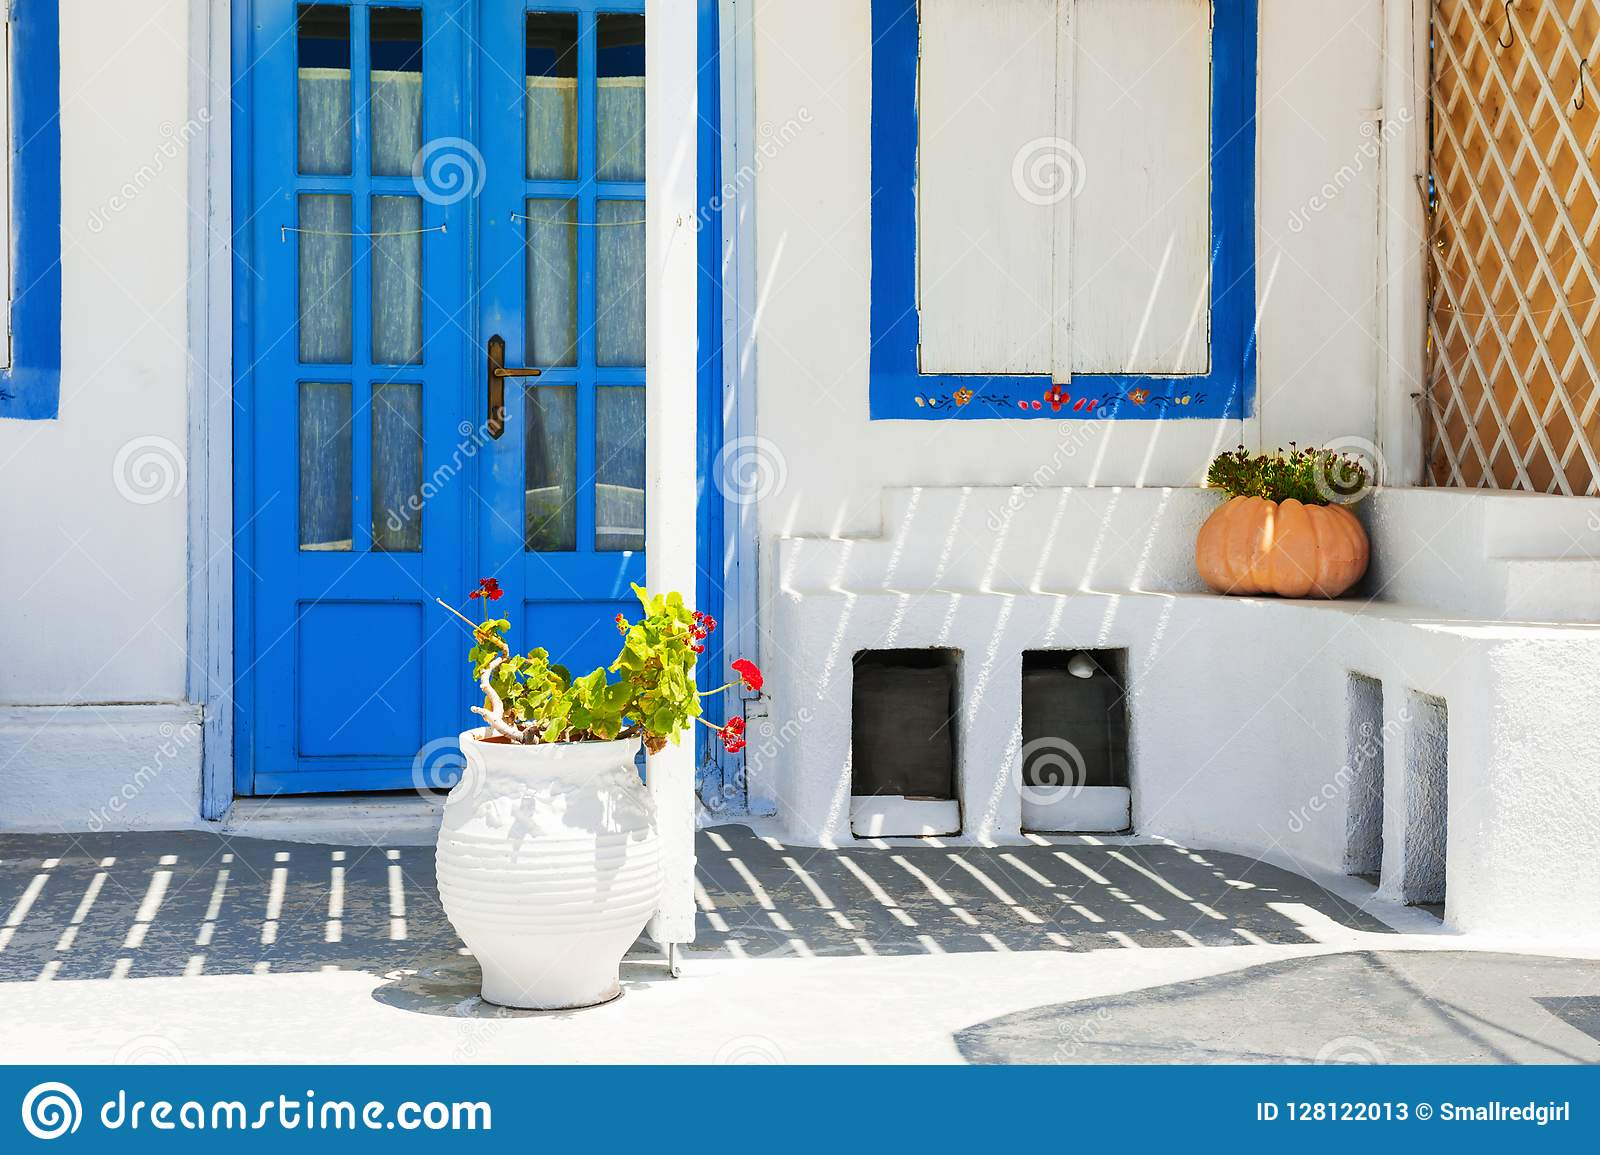 Traditional greek white architecture with blue doors and windows